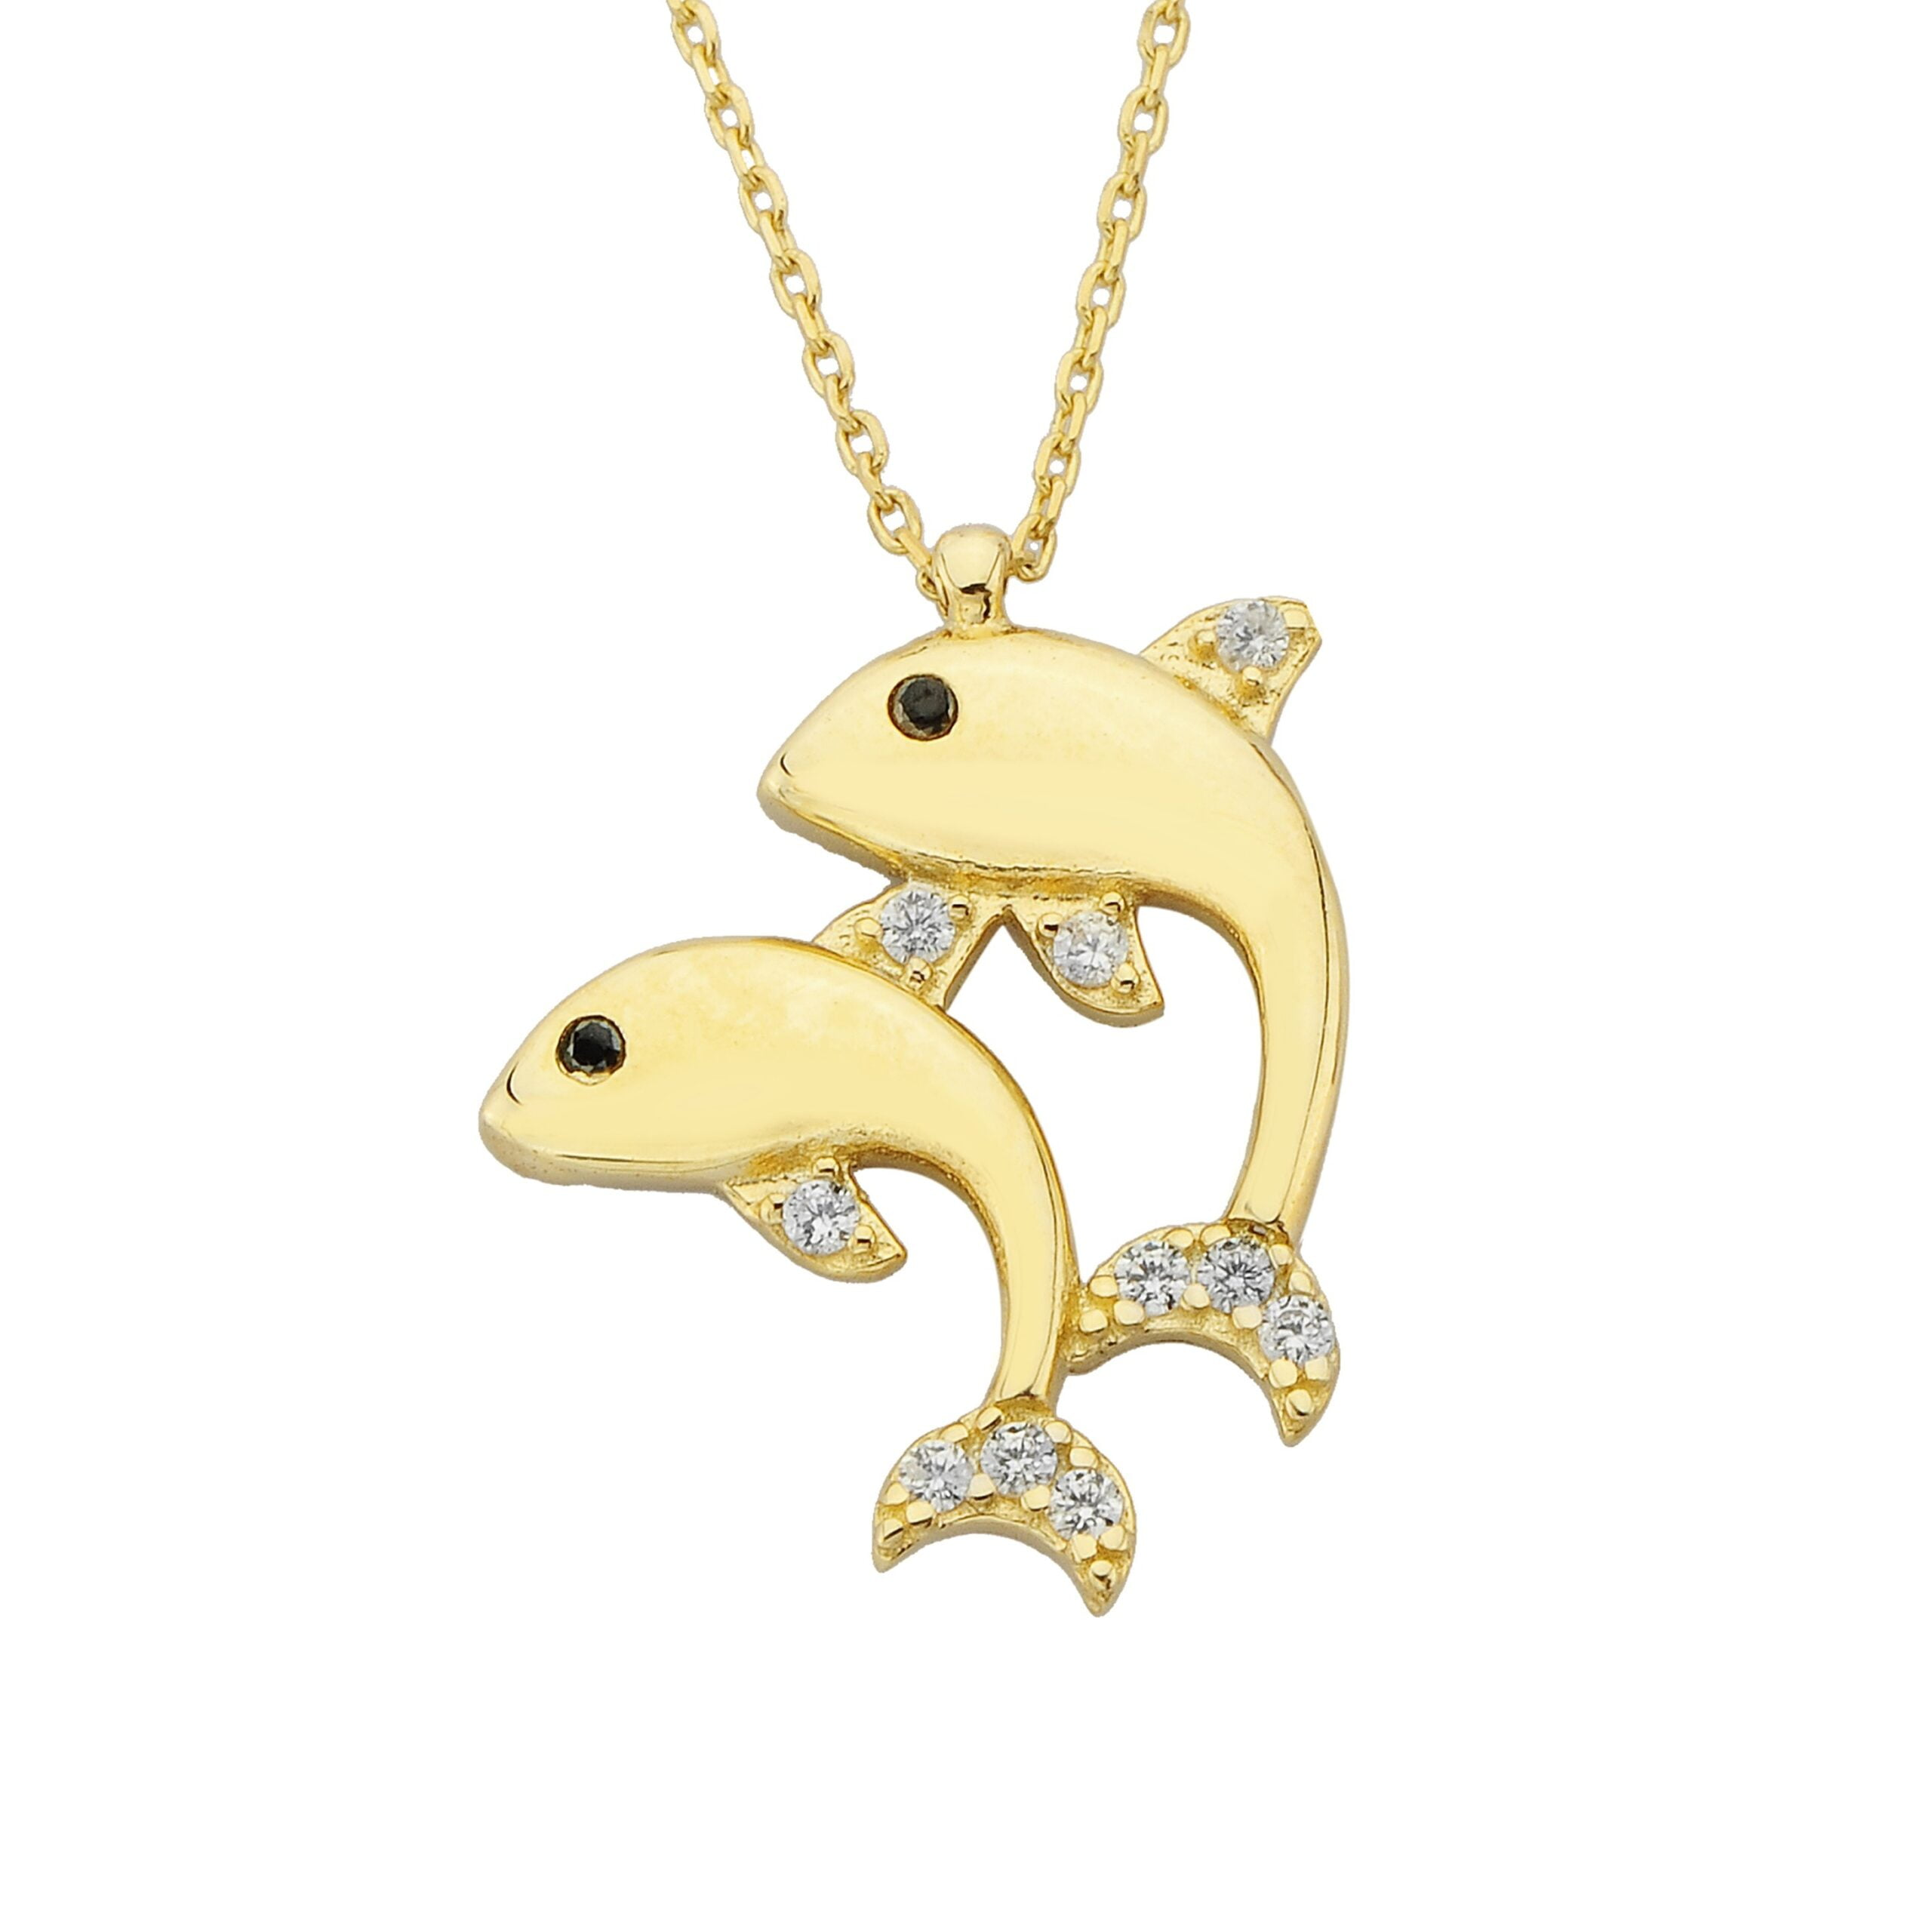 Double Dolphin Pendant Necklace for Women 14k Real Solid Gold | Charm Dainty Good Luck jewelry Birthday Mother's Day Christmas Gift